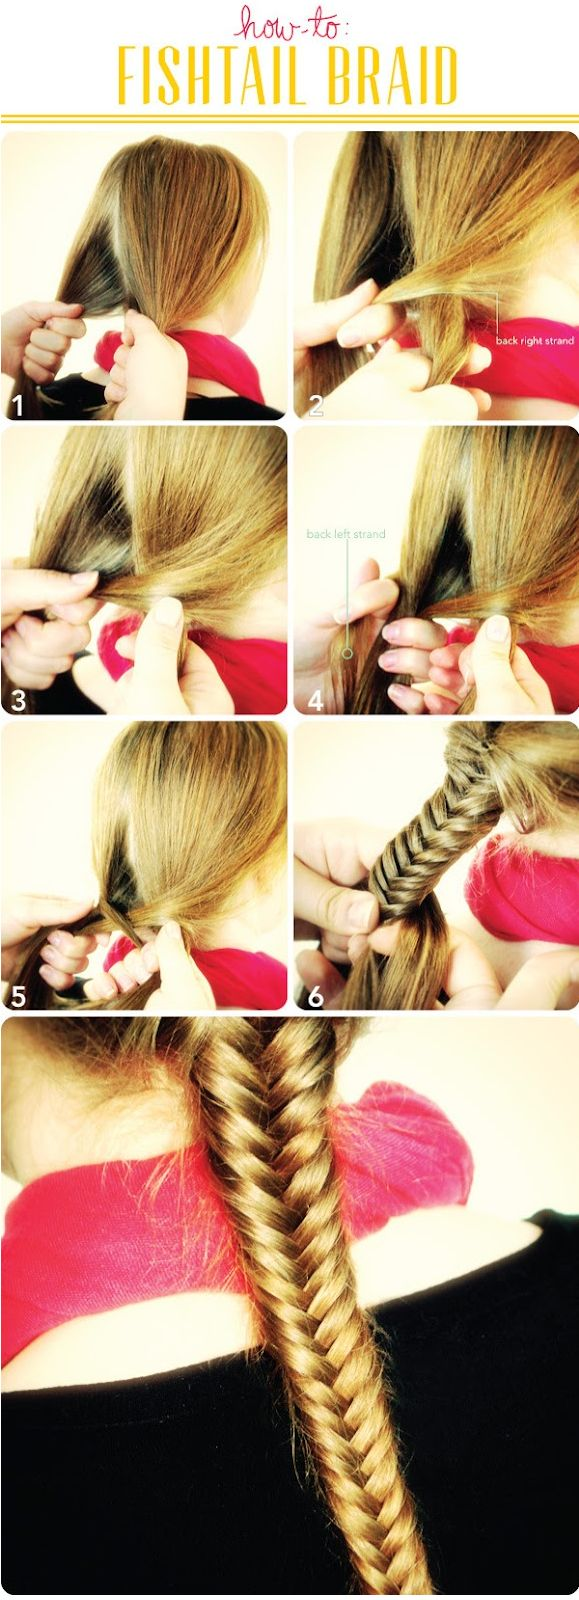 Fishtail Braid Tutorial How To. If you still can't find out go to youtube and type in Easy Fishtail Braids for beginners